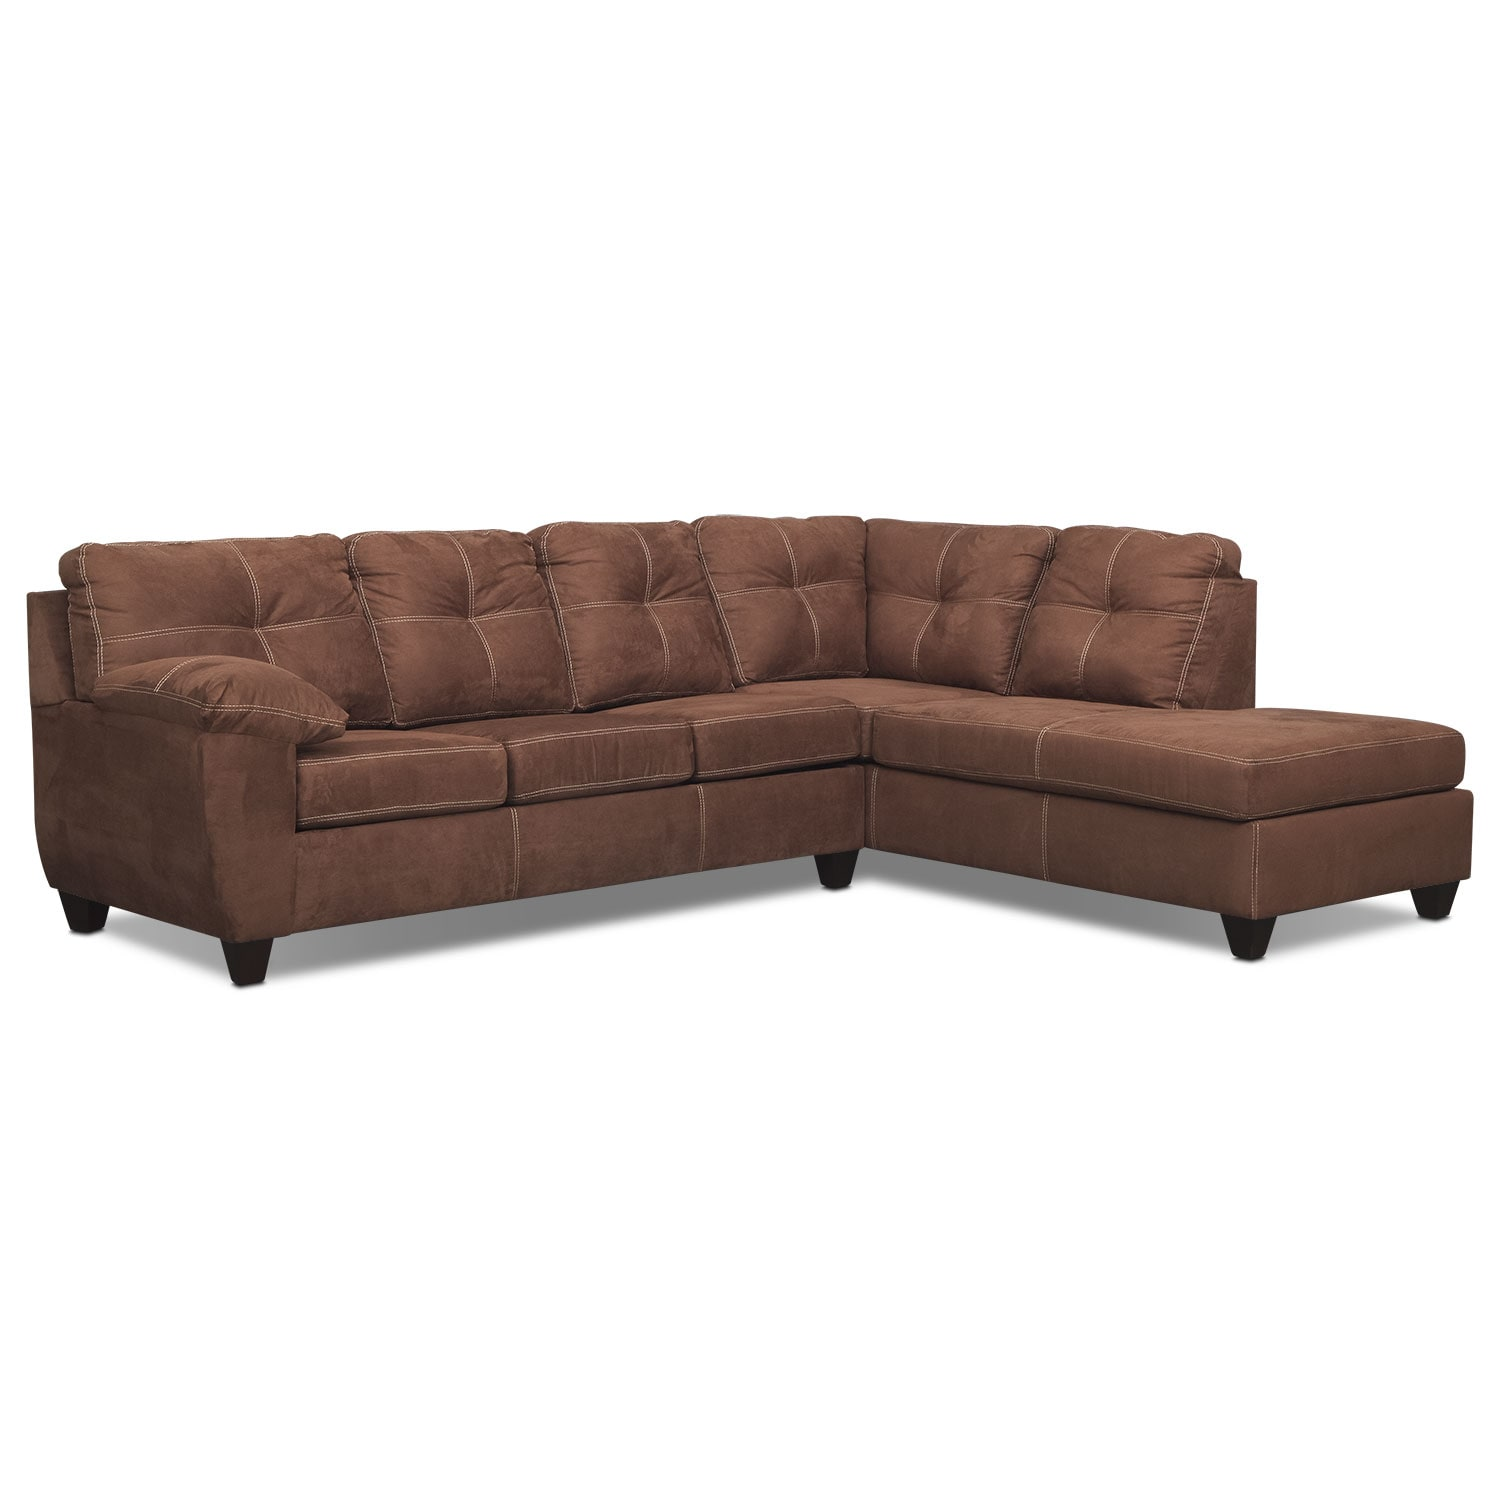 Rialto 2-Piece Memory Foam Sleeper Sectional with Right-Facing Chaise - Coffee